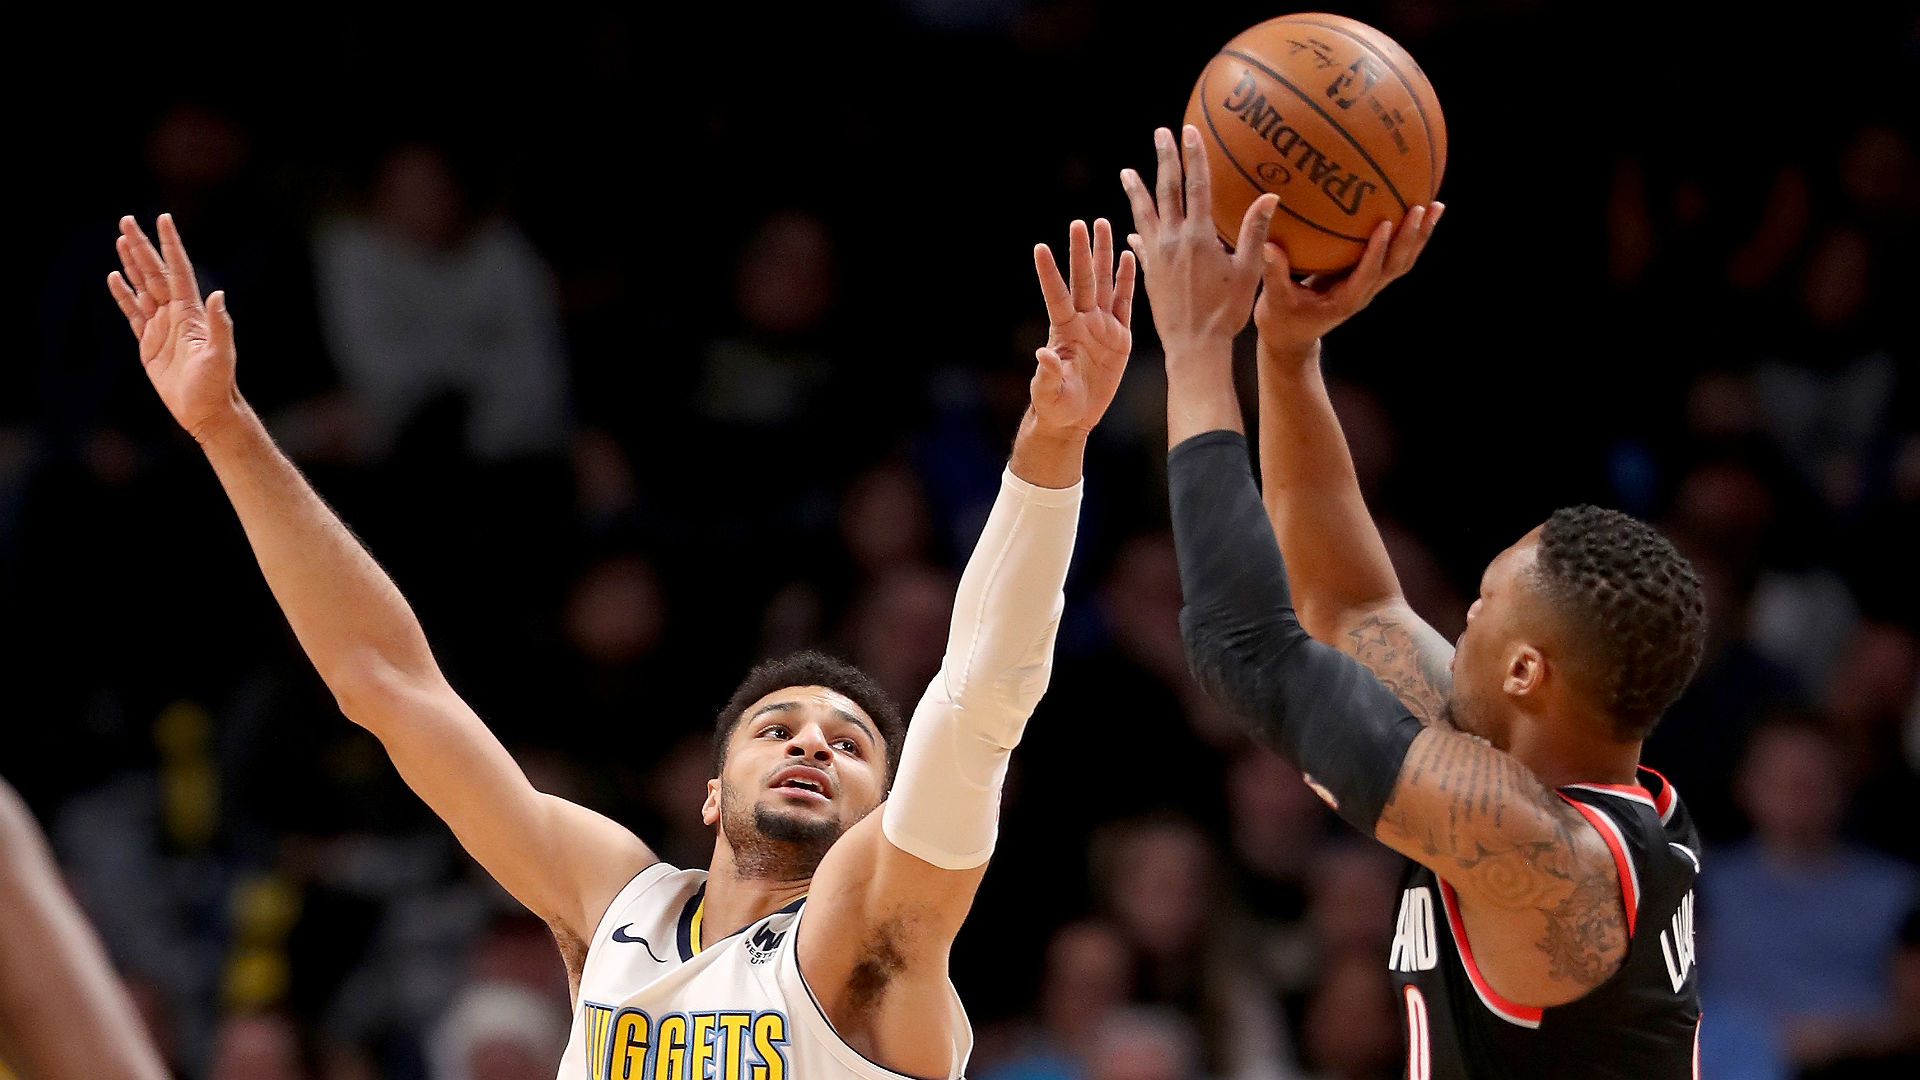 NBA playoffs 2019/Nuggets vs. Trail Blazers: 3 things that will decide the series